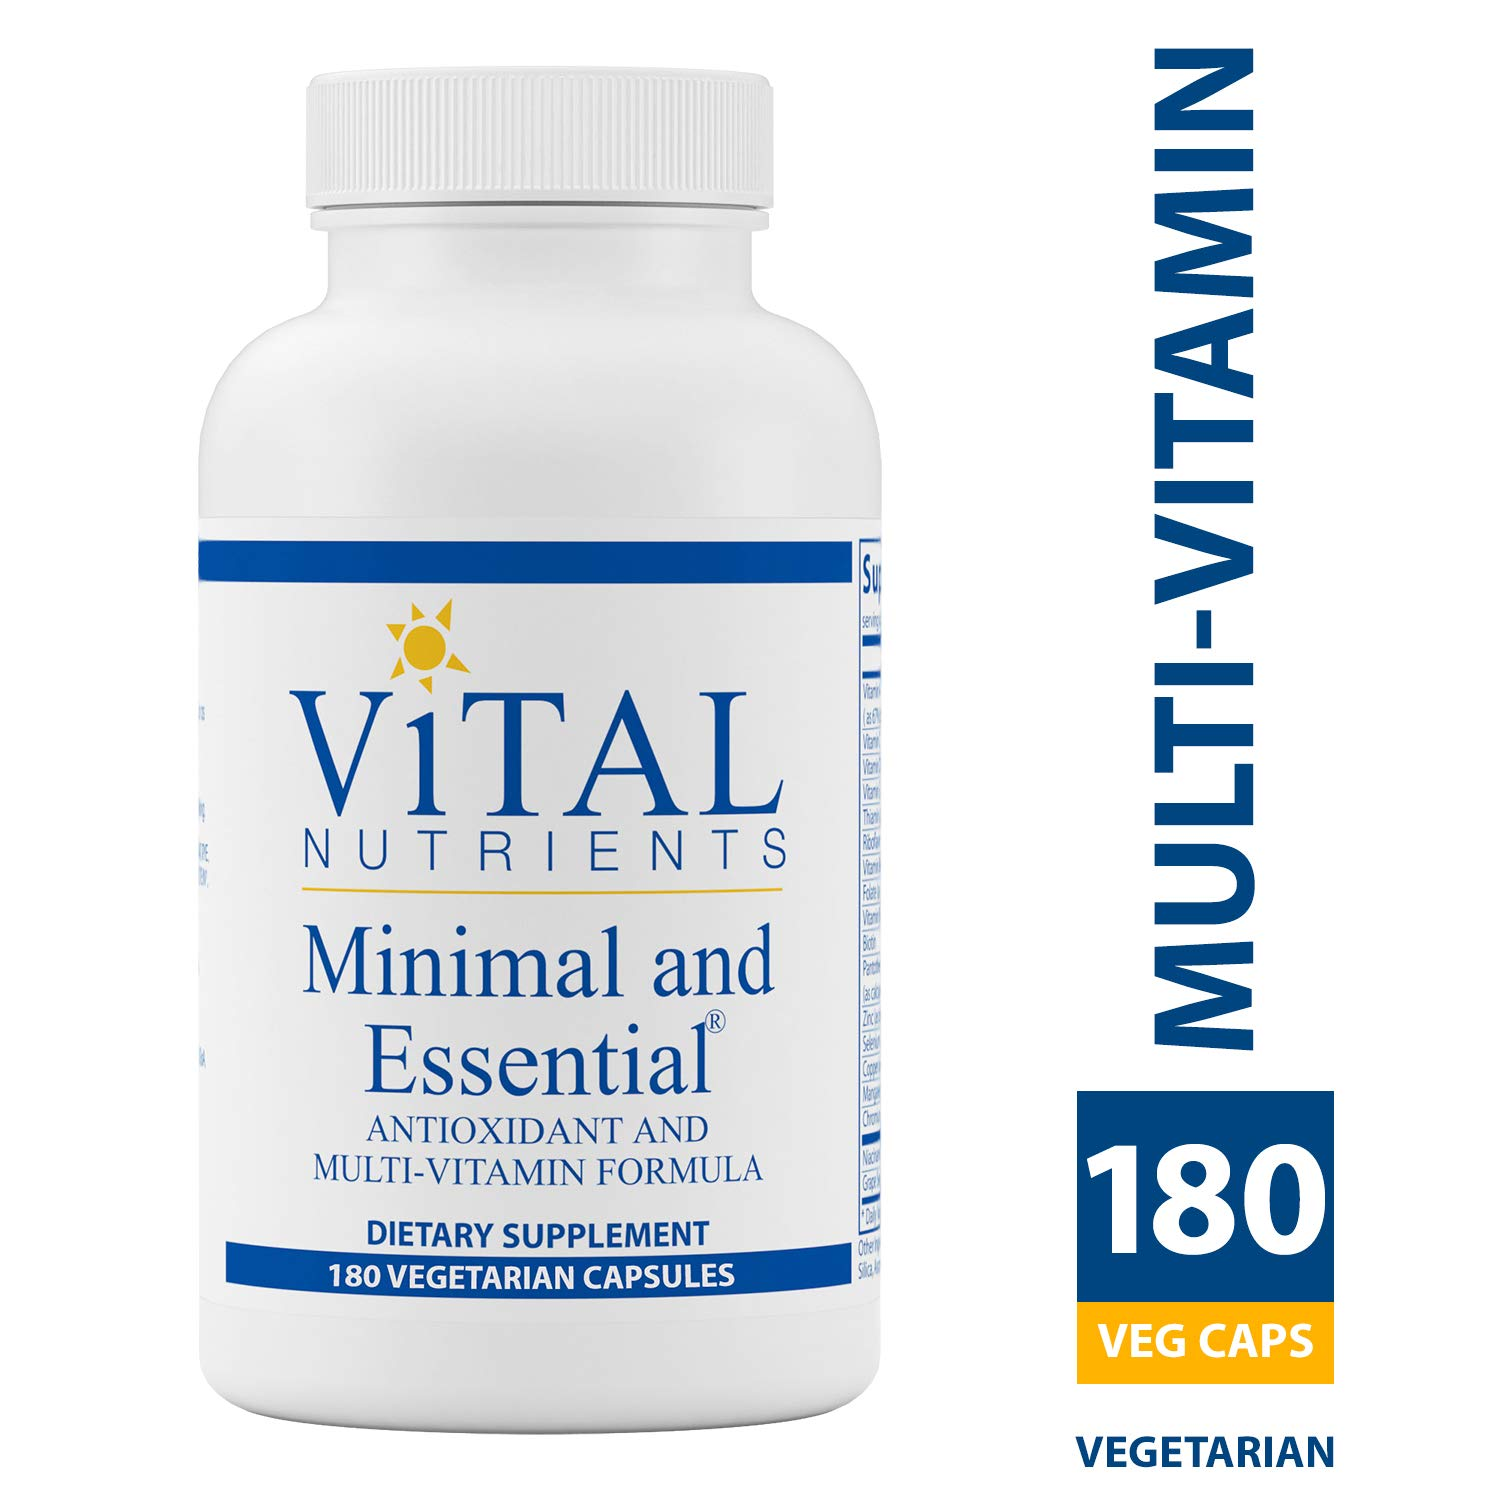 Vital Nutrients - Minimal & Essential - One a Day MultiVitamin/Mineral and Antioxidant Formula - 180 Vegetarian Capsules per Bottle